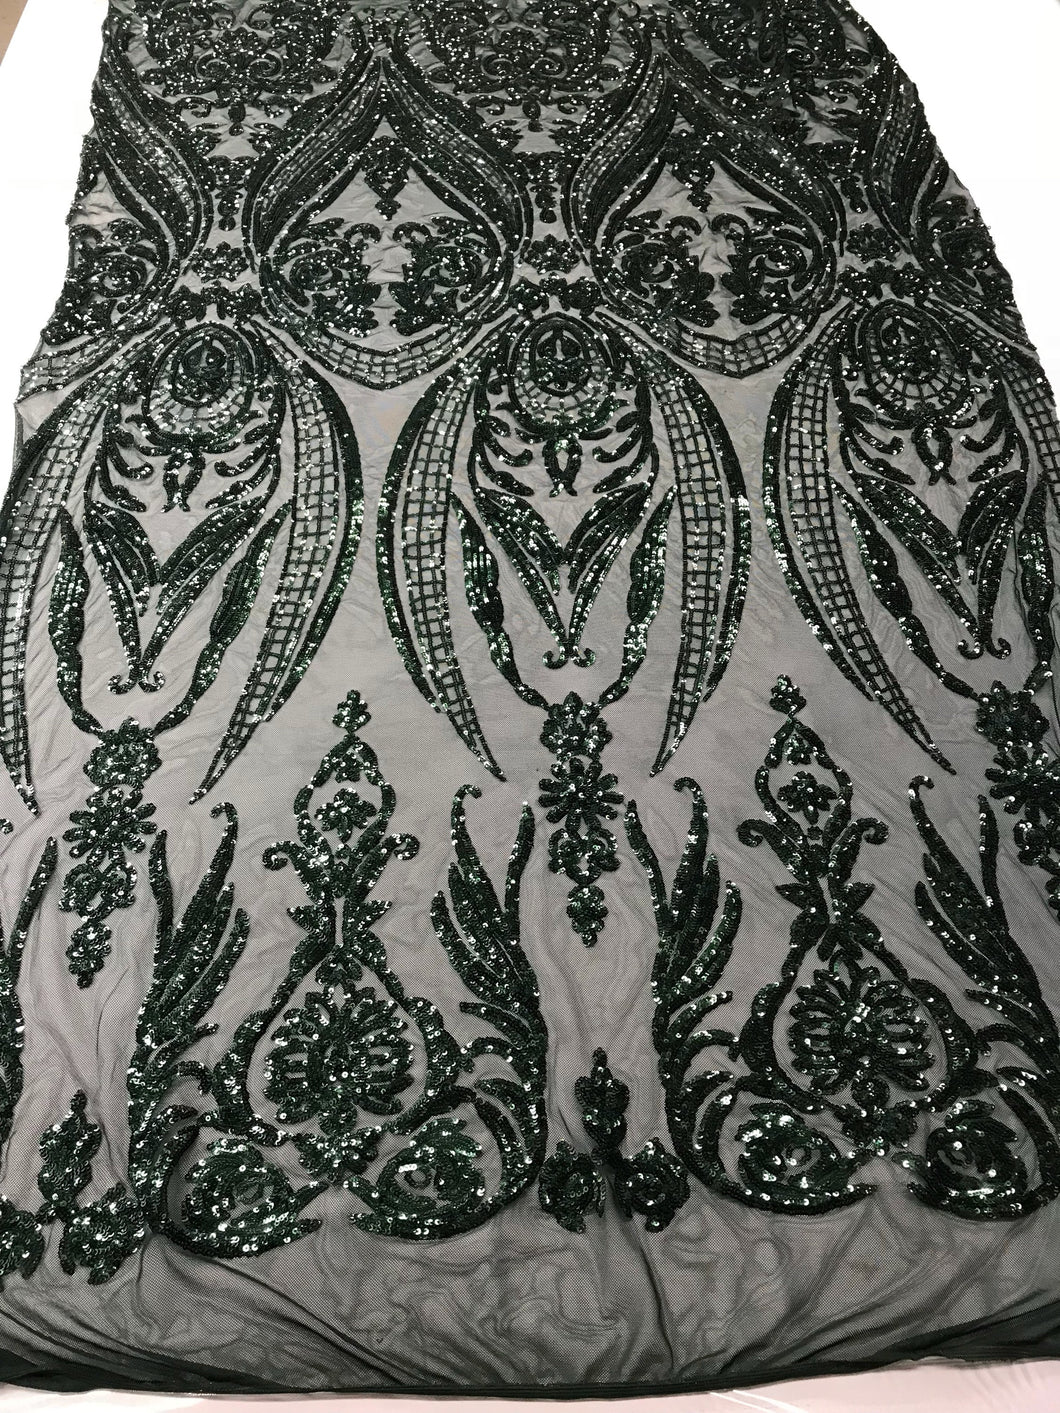 4 Way Stretch Fabric Hunter Green Embroidered Sequins Lace Fashion Drees Bridal Veil Wedding Decoration By The Yard